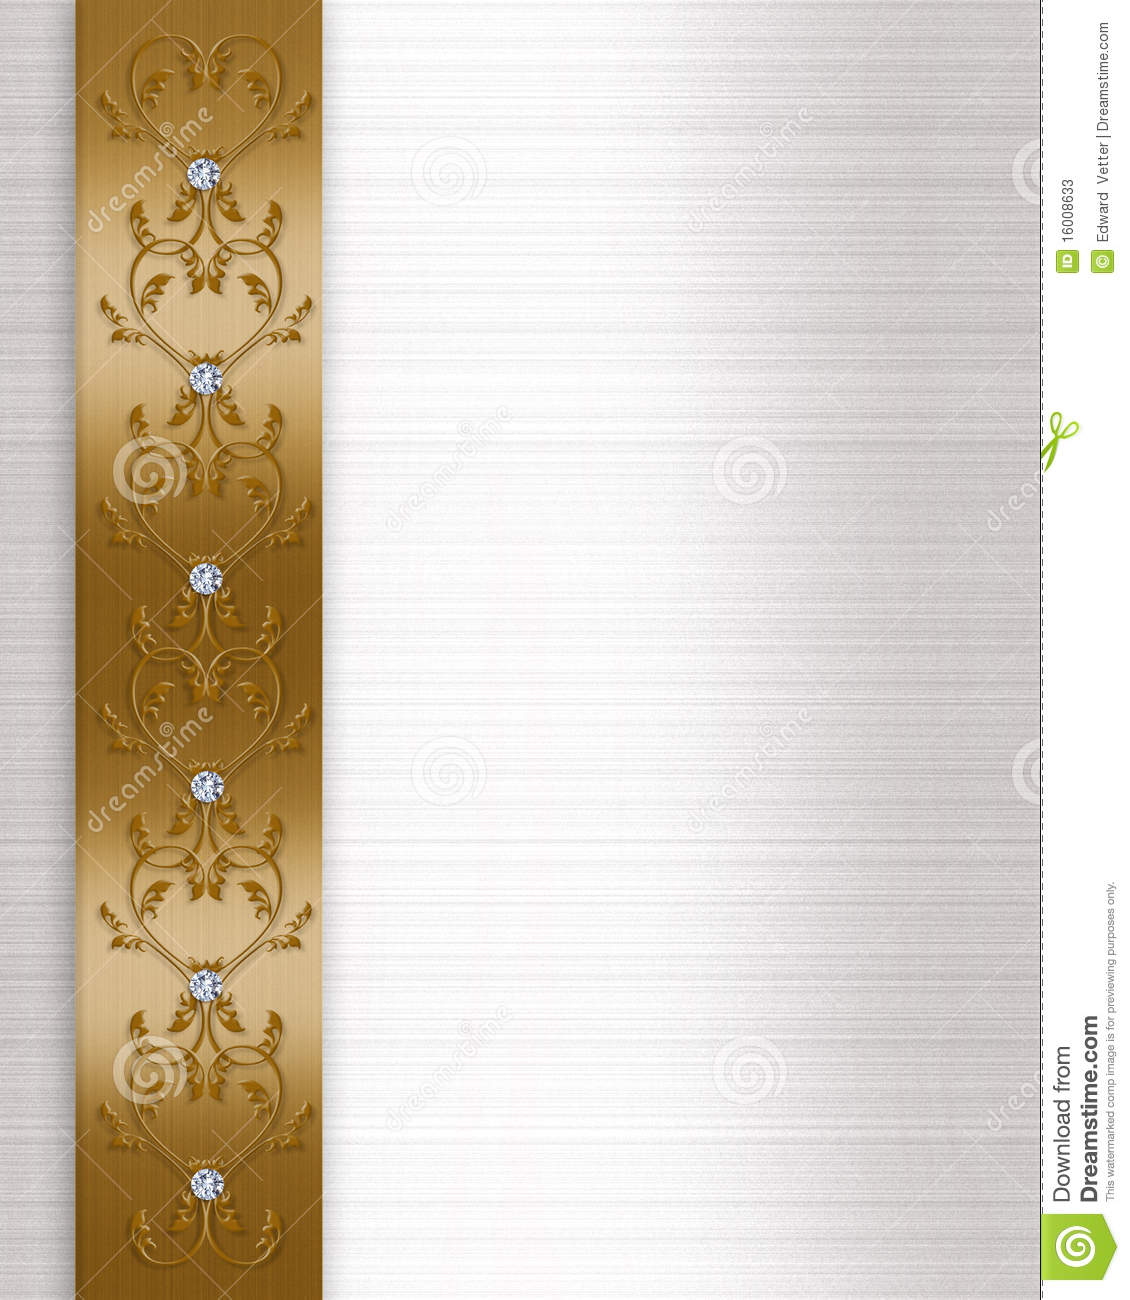 vector ruler to scale I